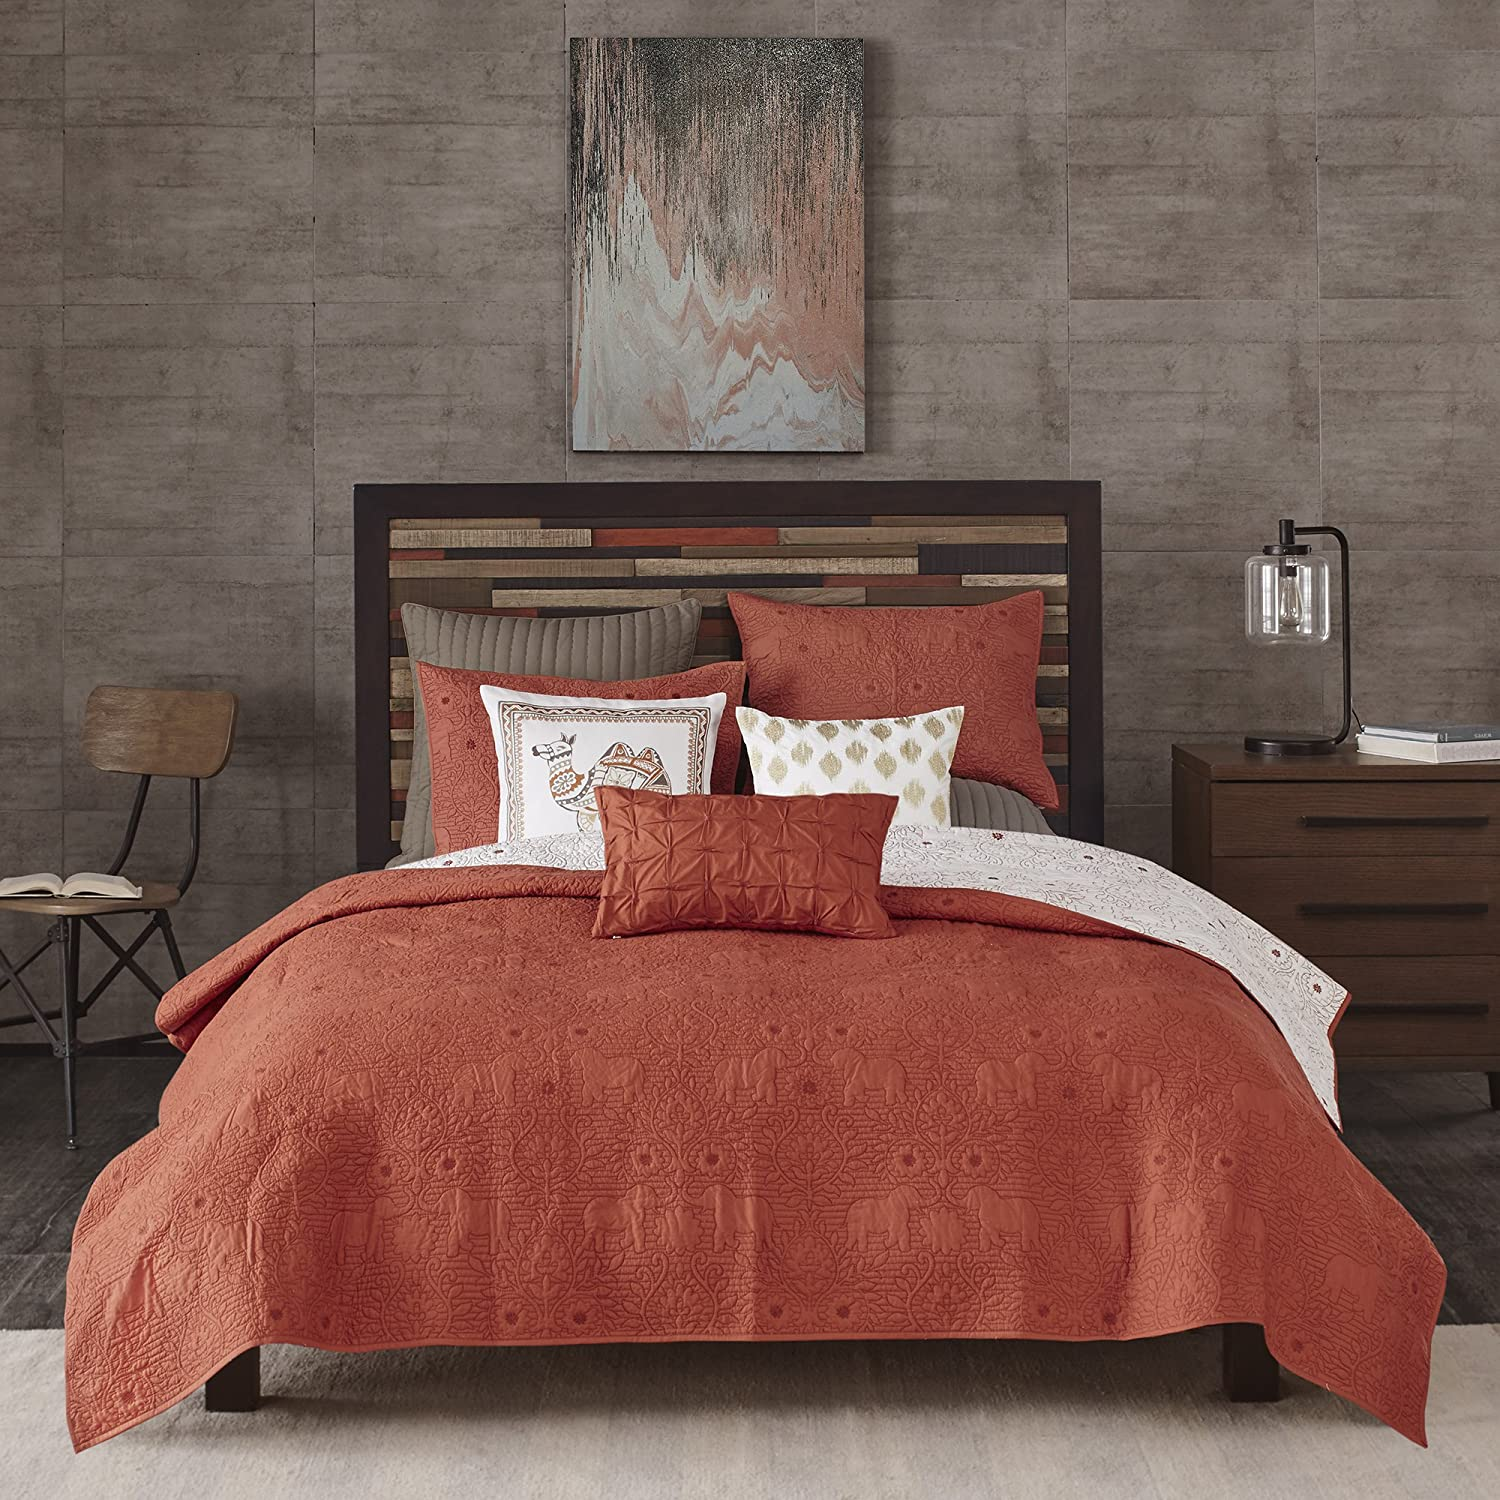 Ink+Ivy Kandula King/Cal King Size Quilt Bedding Set - Dark Orange , Quilted Floral, Elephants – 3 Piece Bedding Quilt Coverlets – 100% Cotton Percale Bed Quilts Quilted Coverlet